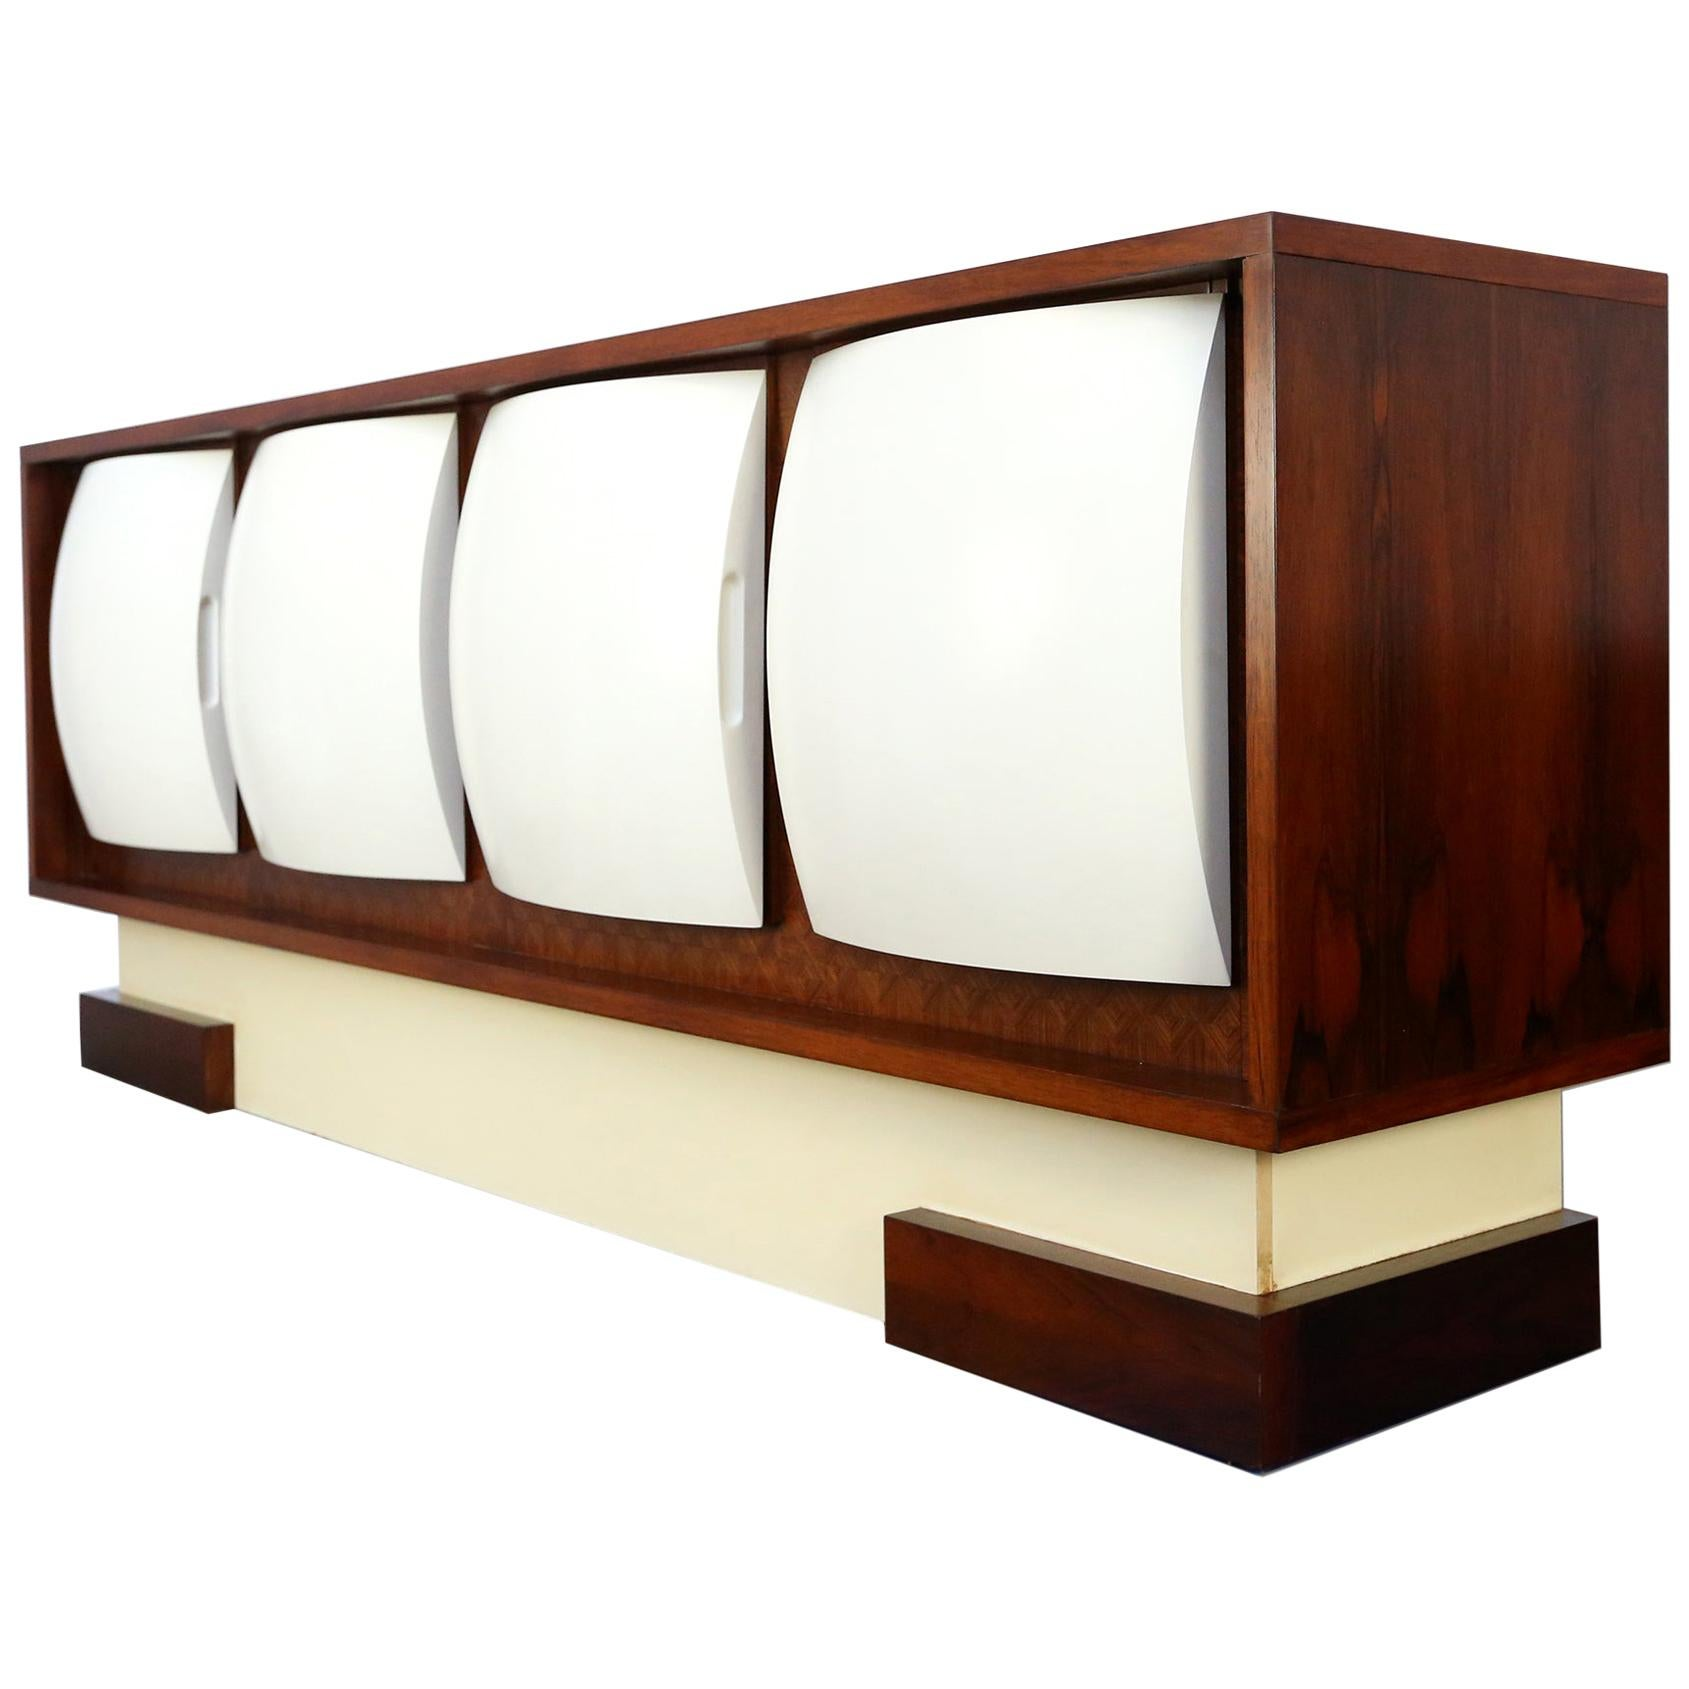 Space Age Sideboard in Rosewood and Fiberglass, Philippon and Lecoq Style, 1960s